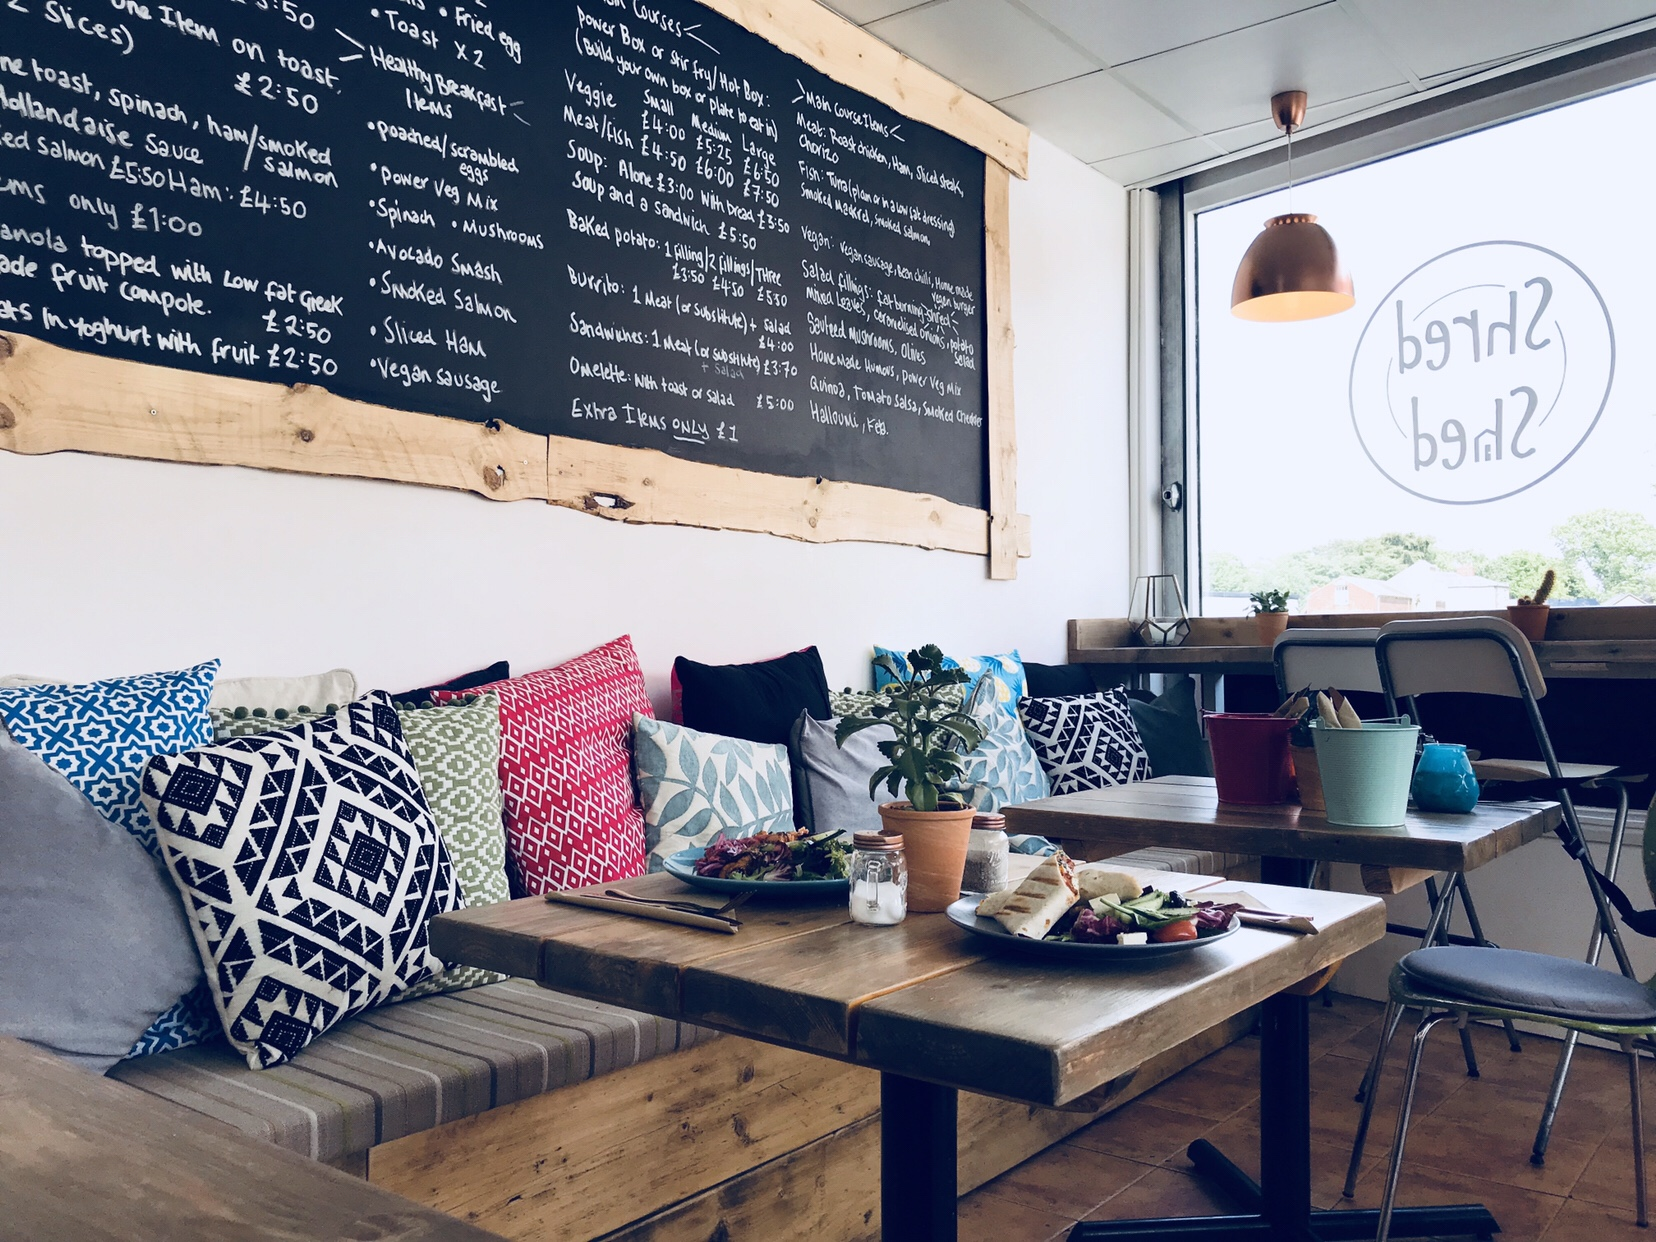 Shred Shed | Stockport's New Healthy Eating Cafe